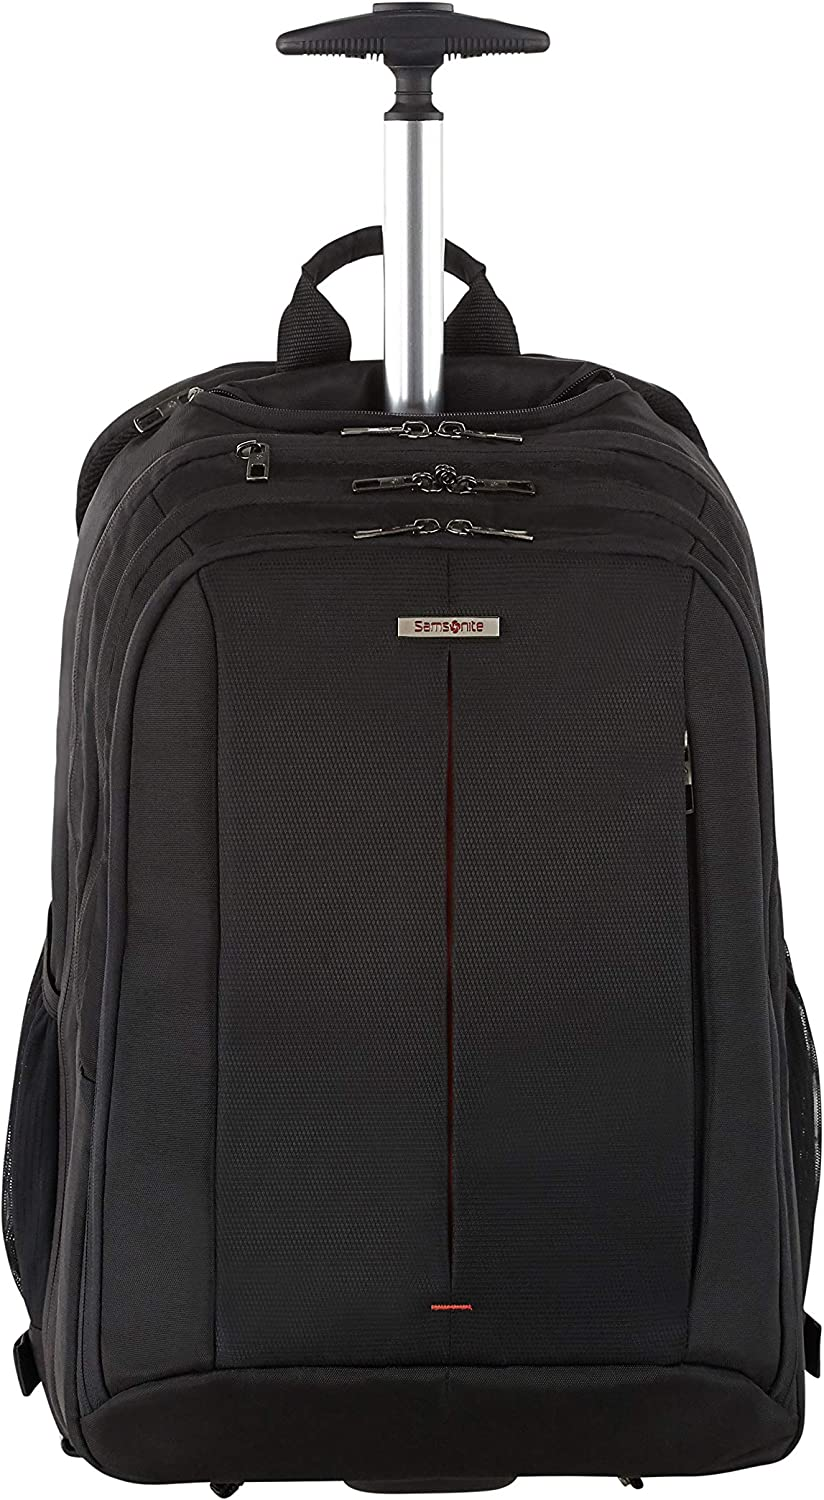 SAMSONITE *09 GUARDIT 2.0 Backpack 17 Borsa UOMO CARTELLA Porta PC CM5/009